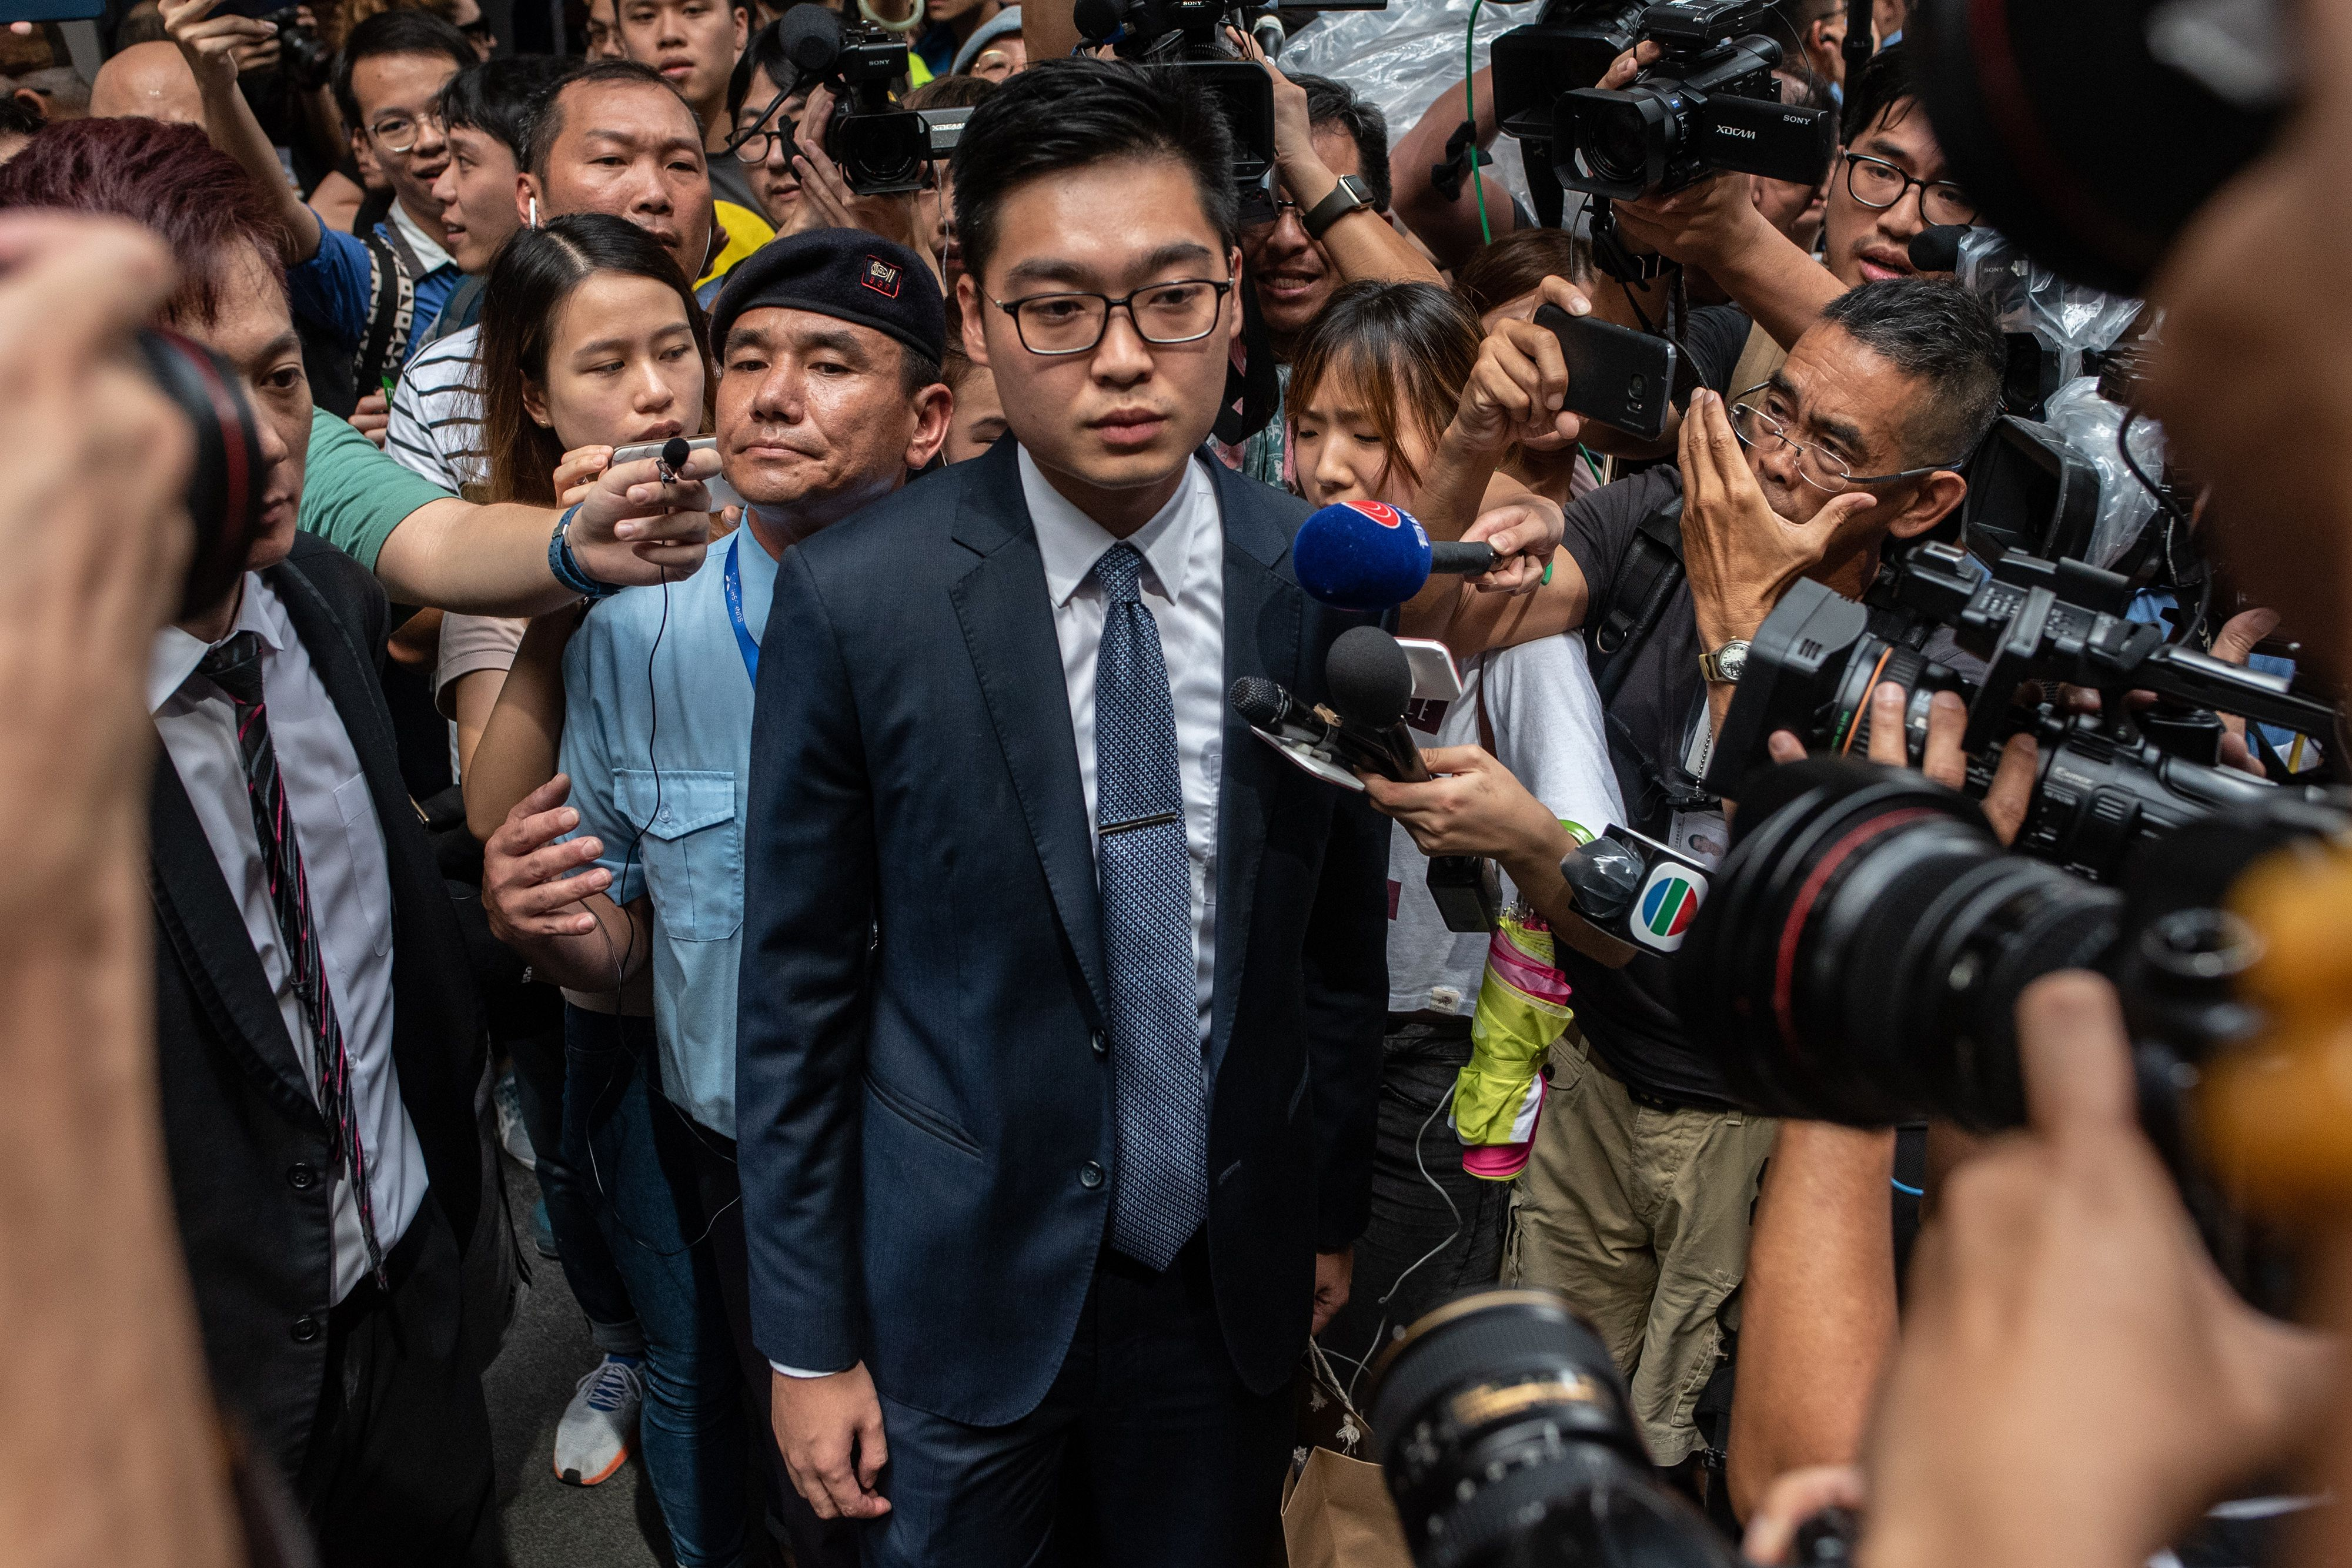 Andy Chan (C), founder of the Hong Kong National Party, is surrounded by members of the media as he leaves the Foreign Correspondents' Club in Hong Kong on Aug. 14, 2018.